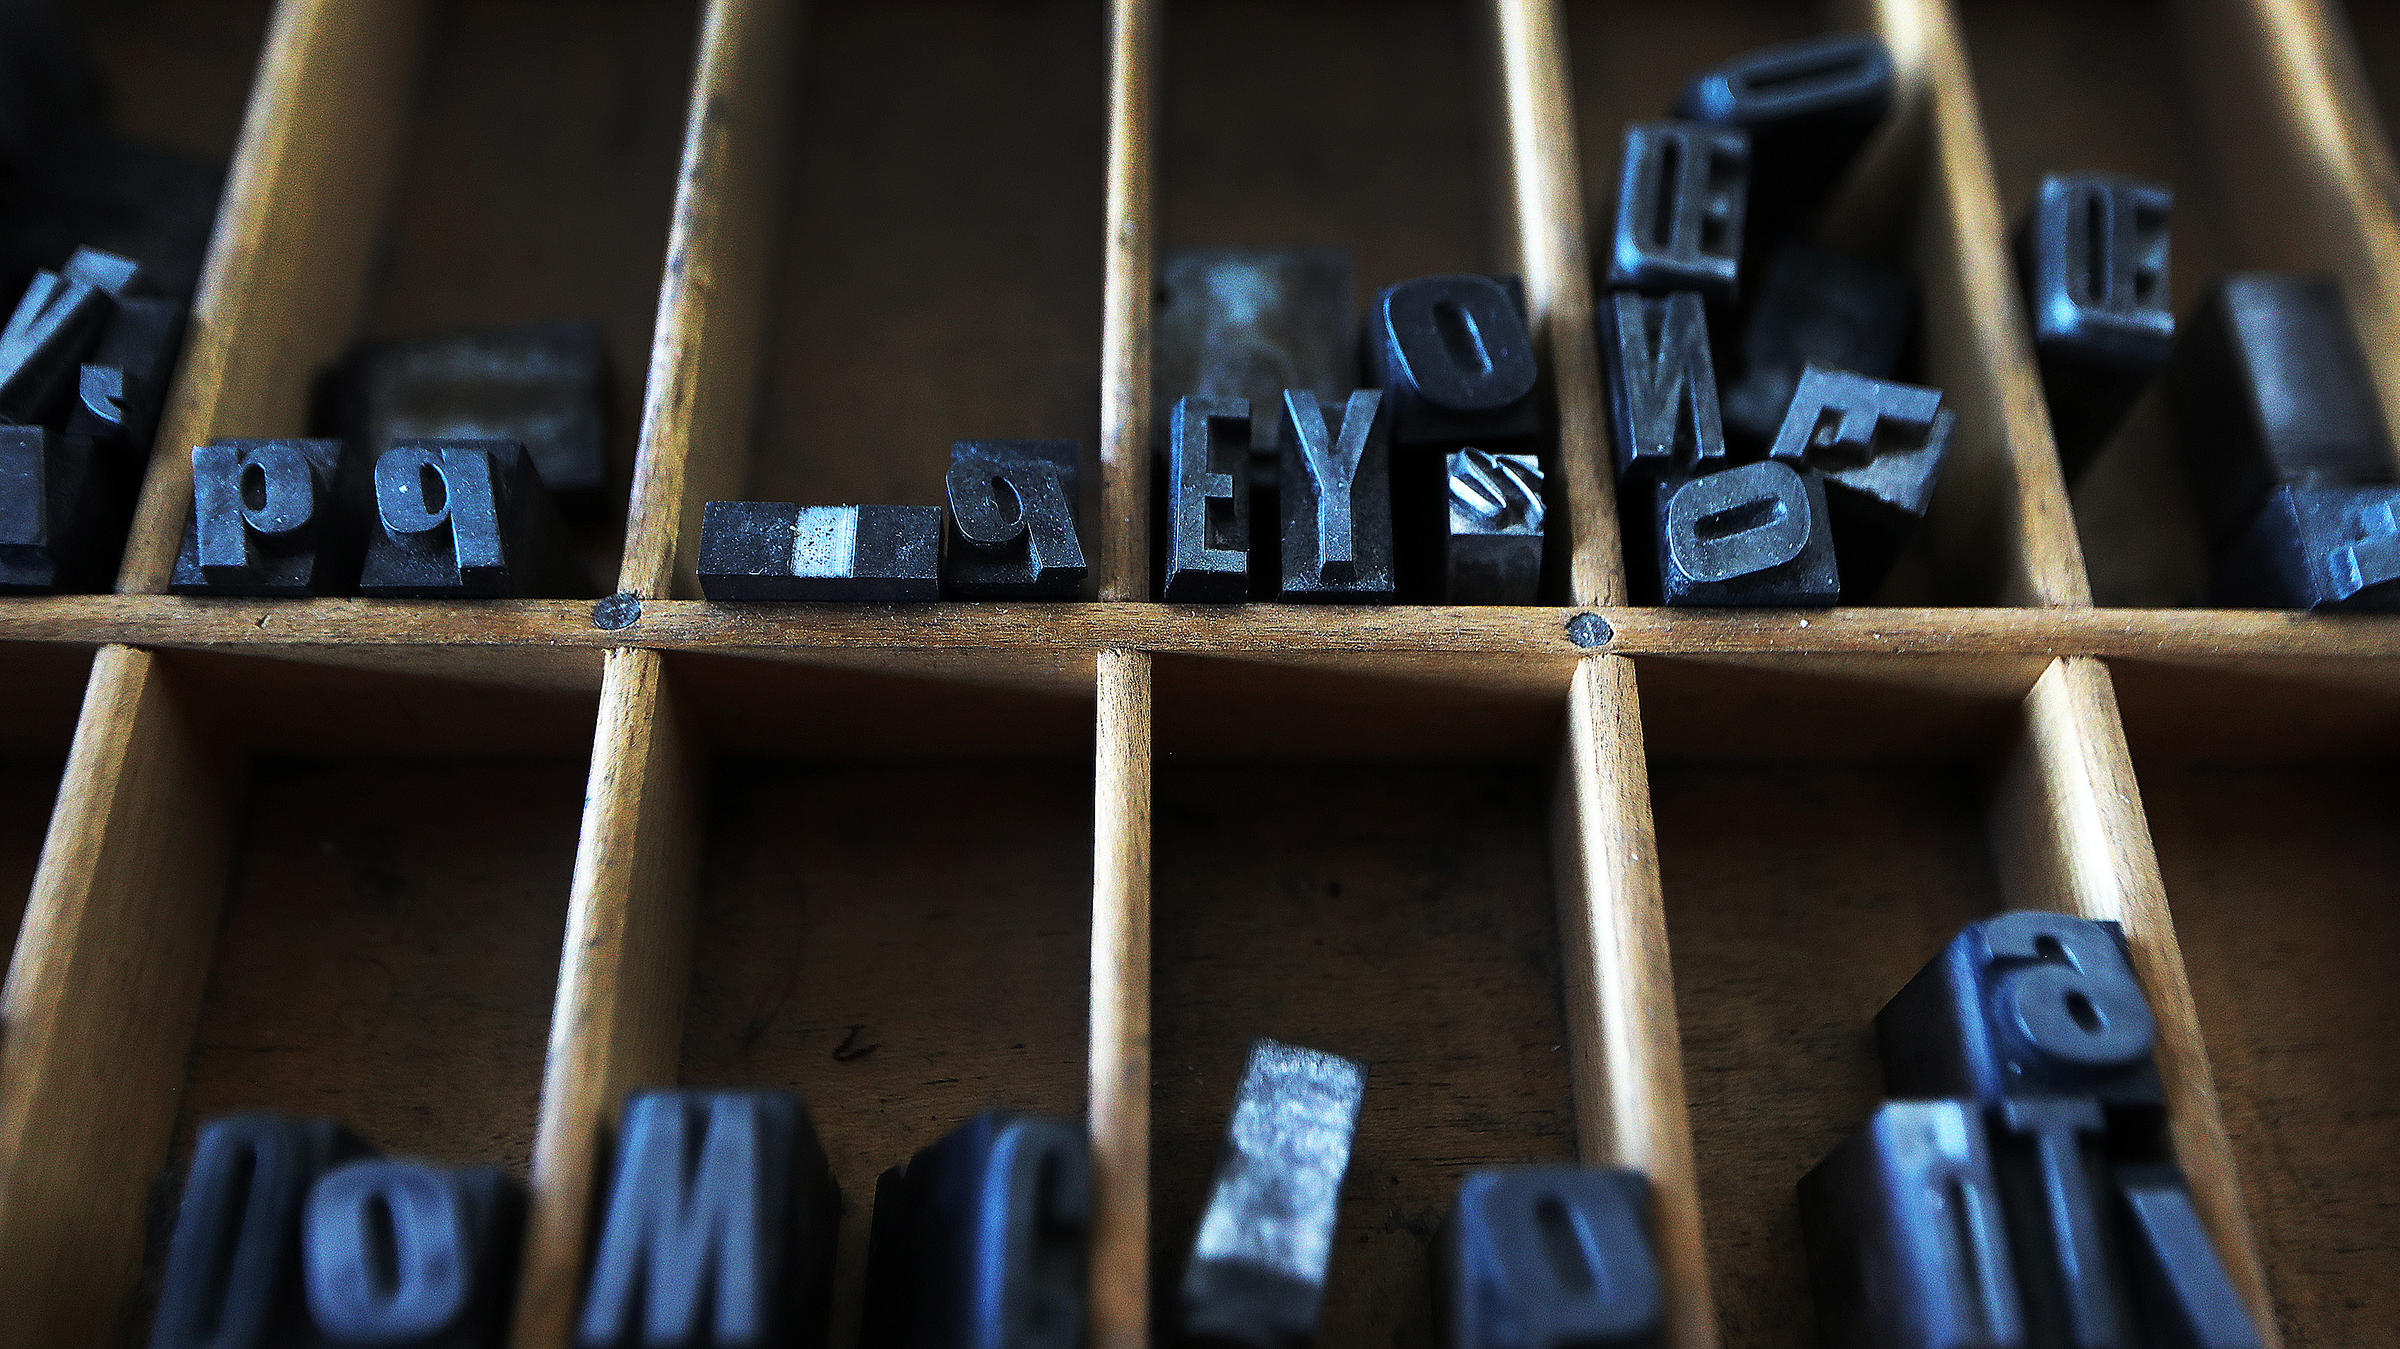 Helvetica, The Iconic Font Both Loved And Loathed, Gets Its